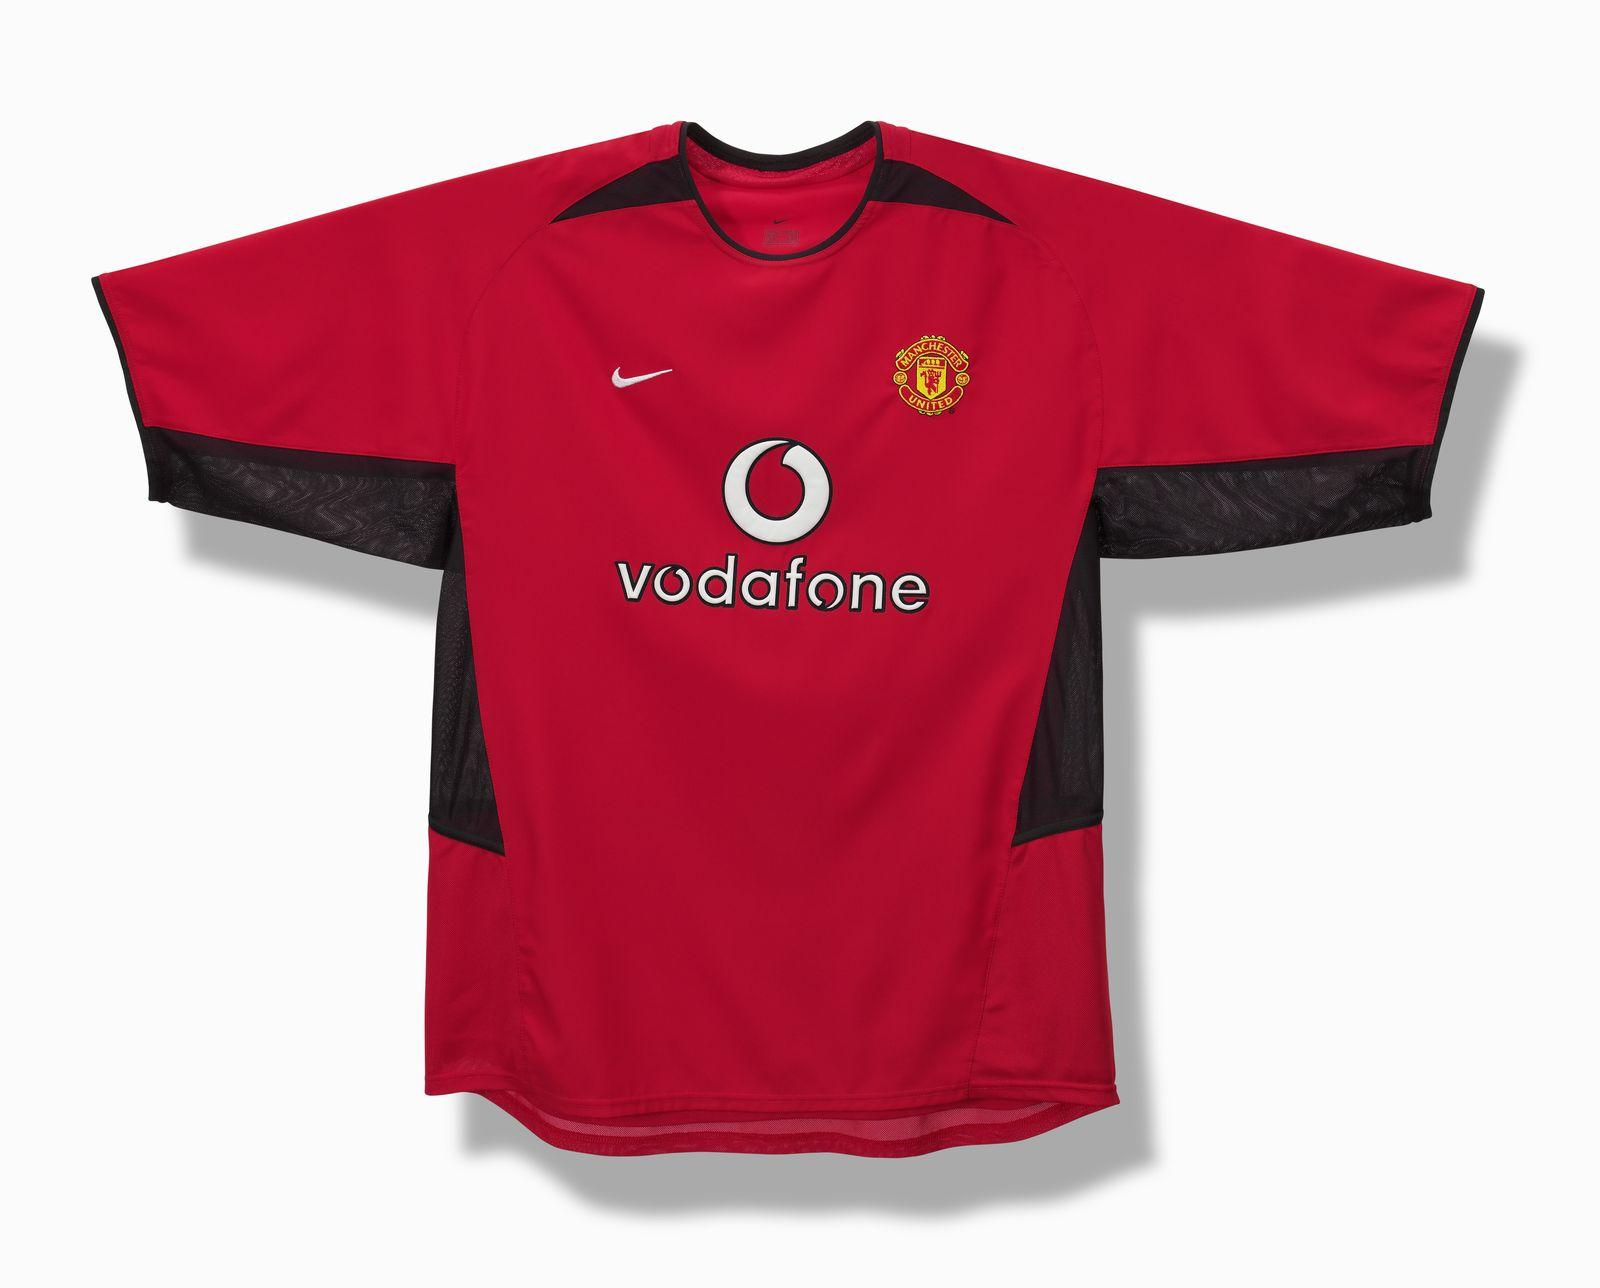 5839aa136 2001-nike-football-history-manchester-united. Nike s frist jersey for ...